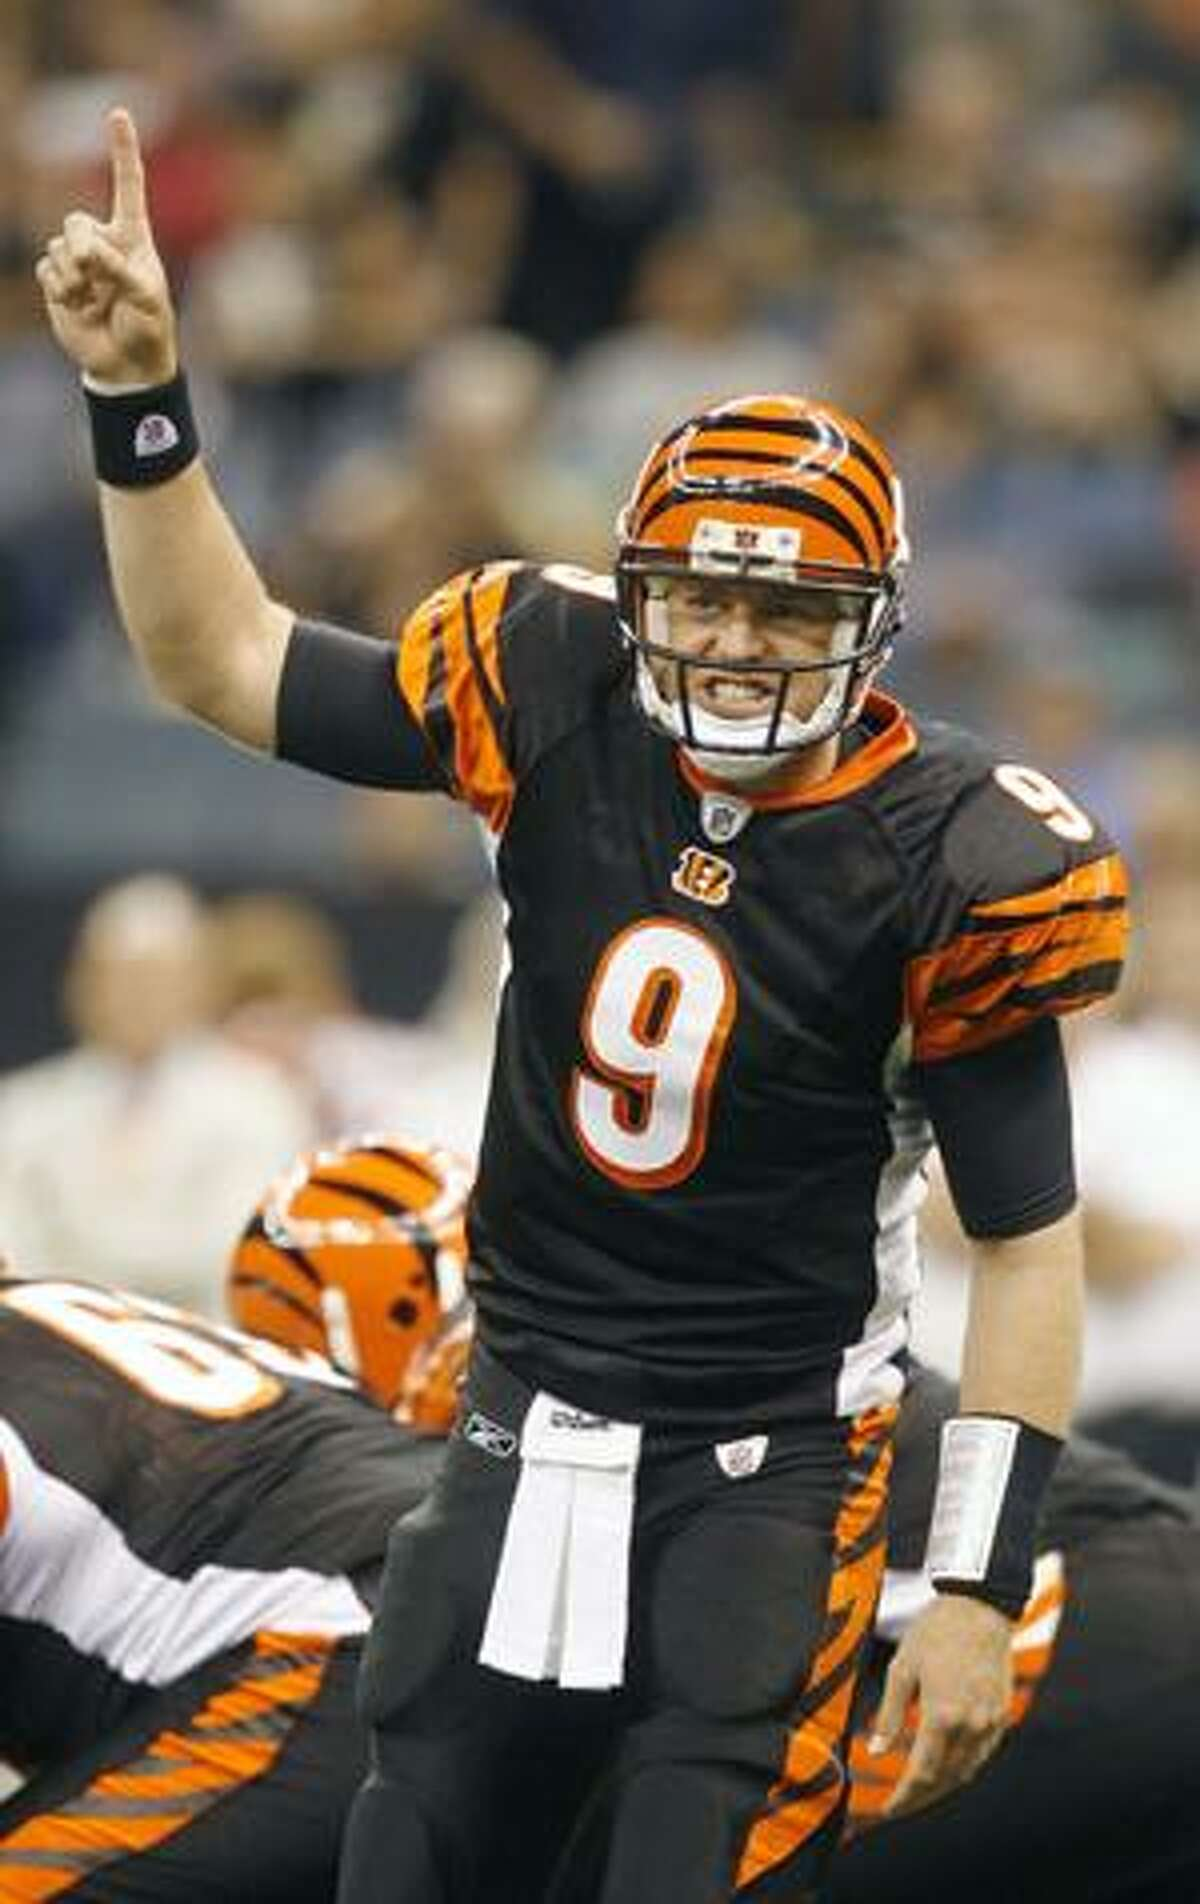 AP Cincinnati Bengals quarterback Carson Palmer (9) calls a play against the New Orleans Saints in the first half of their NFL preseason game in New Orleans on Aug. 14.